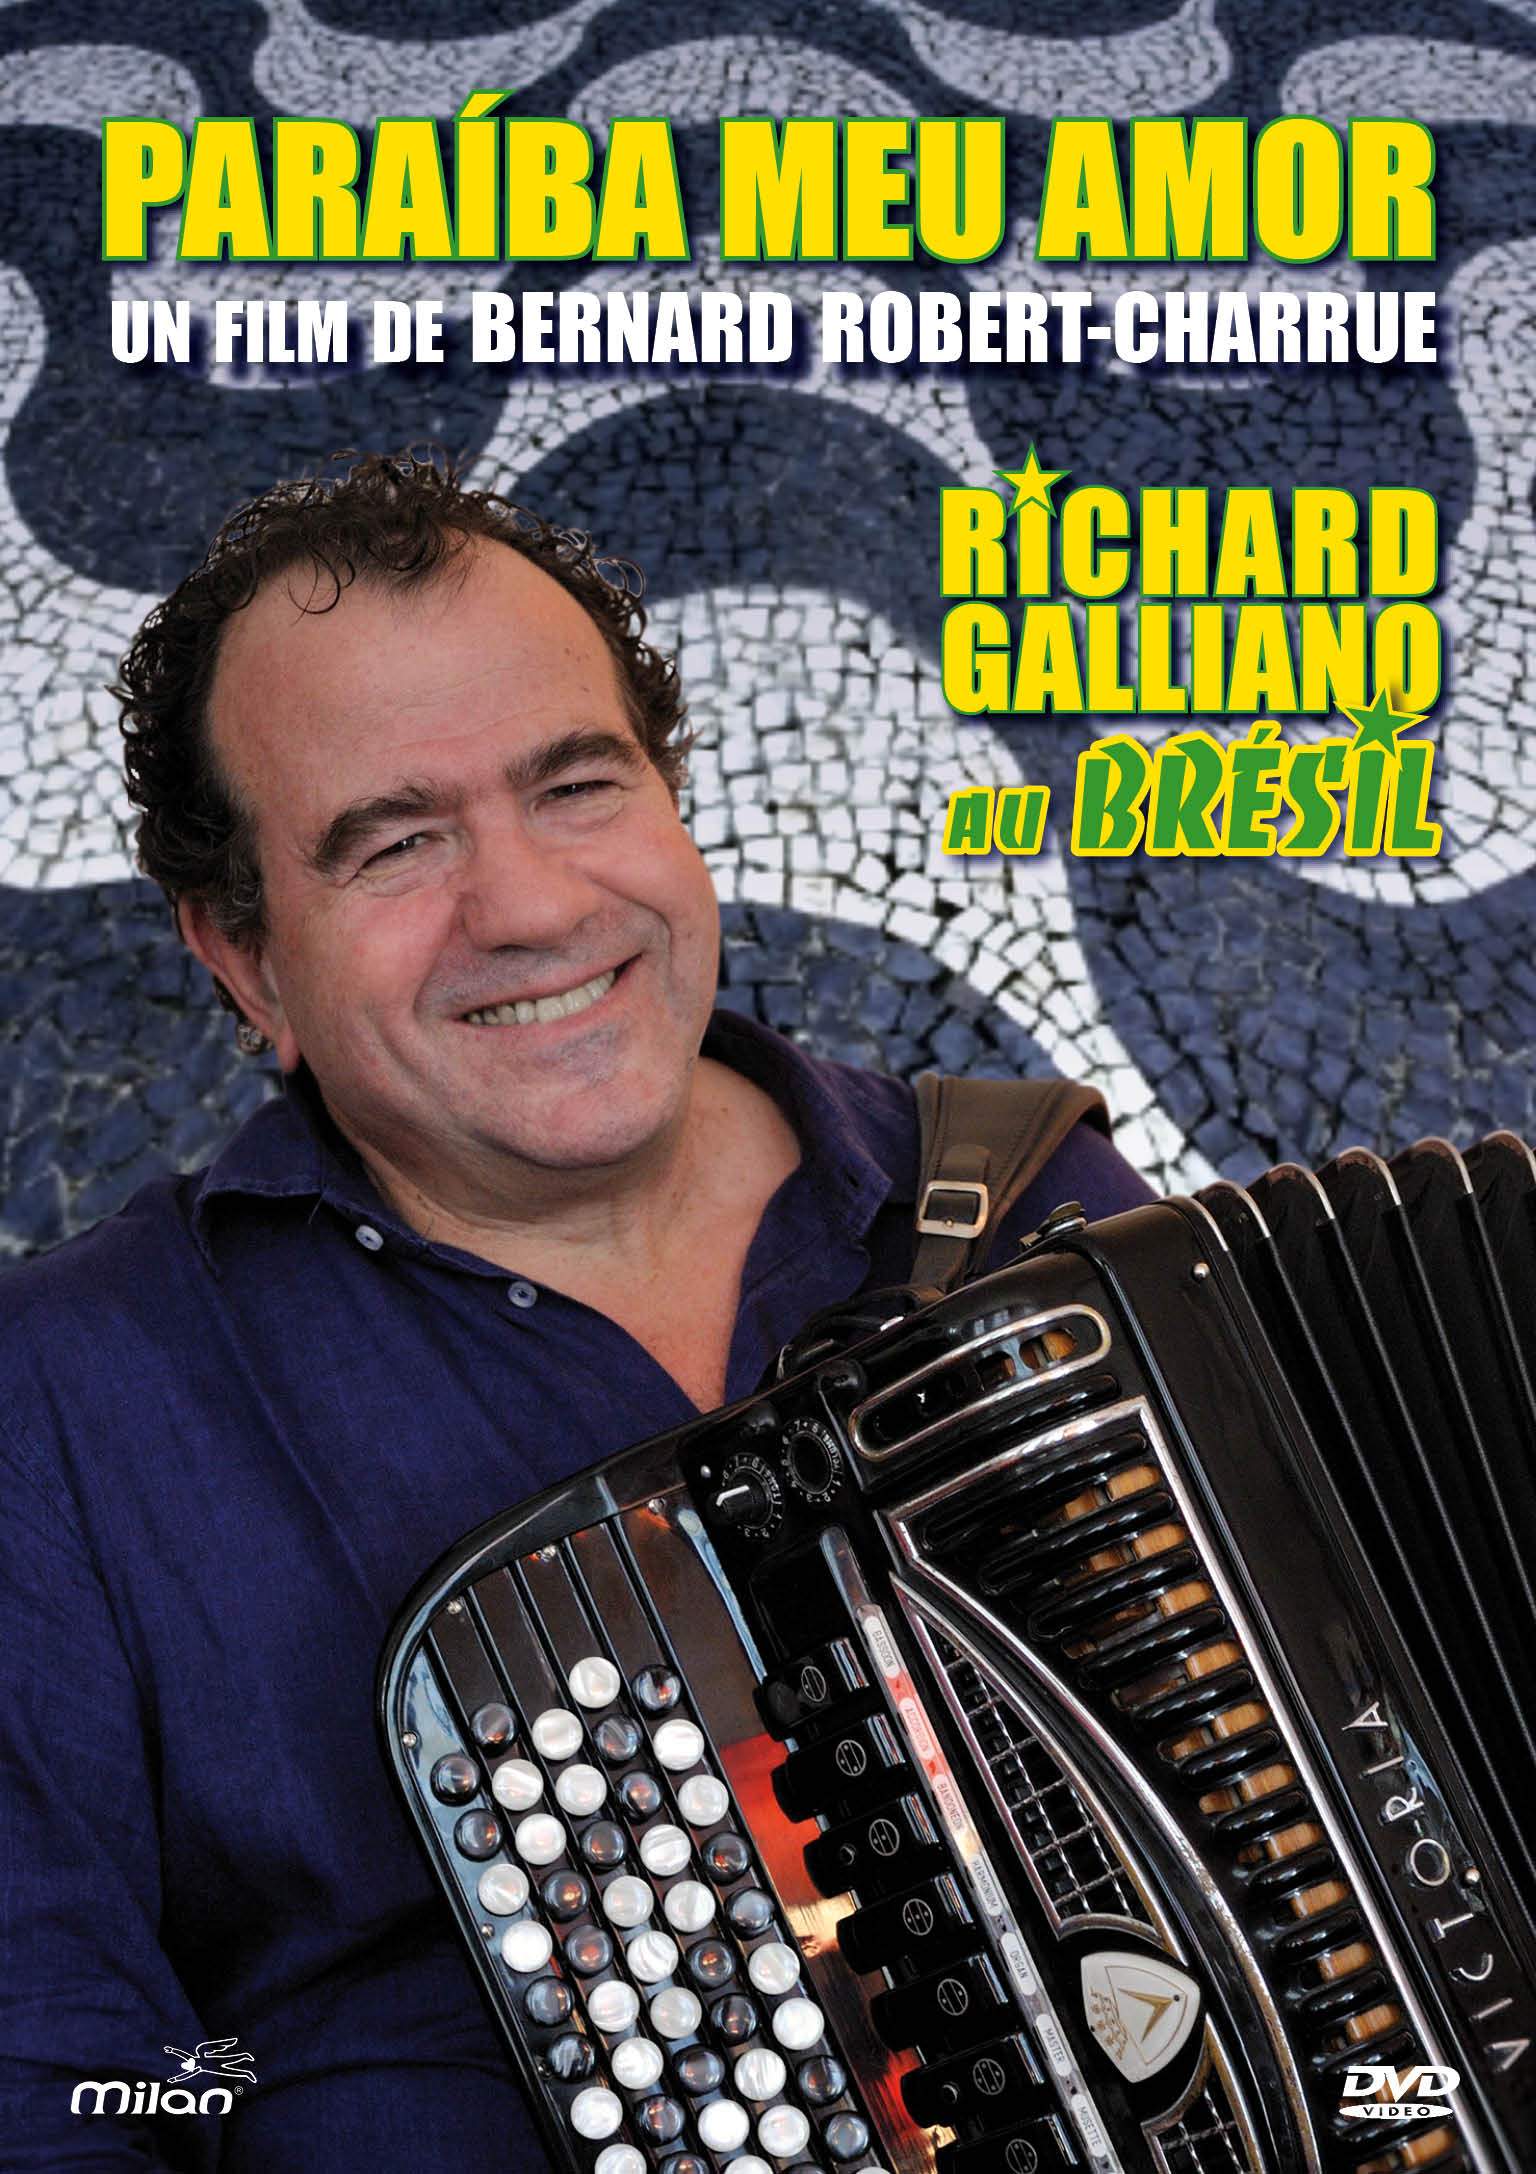 Richard Galliano au Brésil (Paraiba Meu Amor)